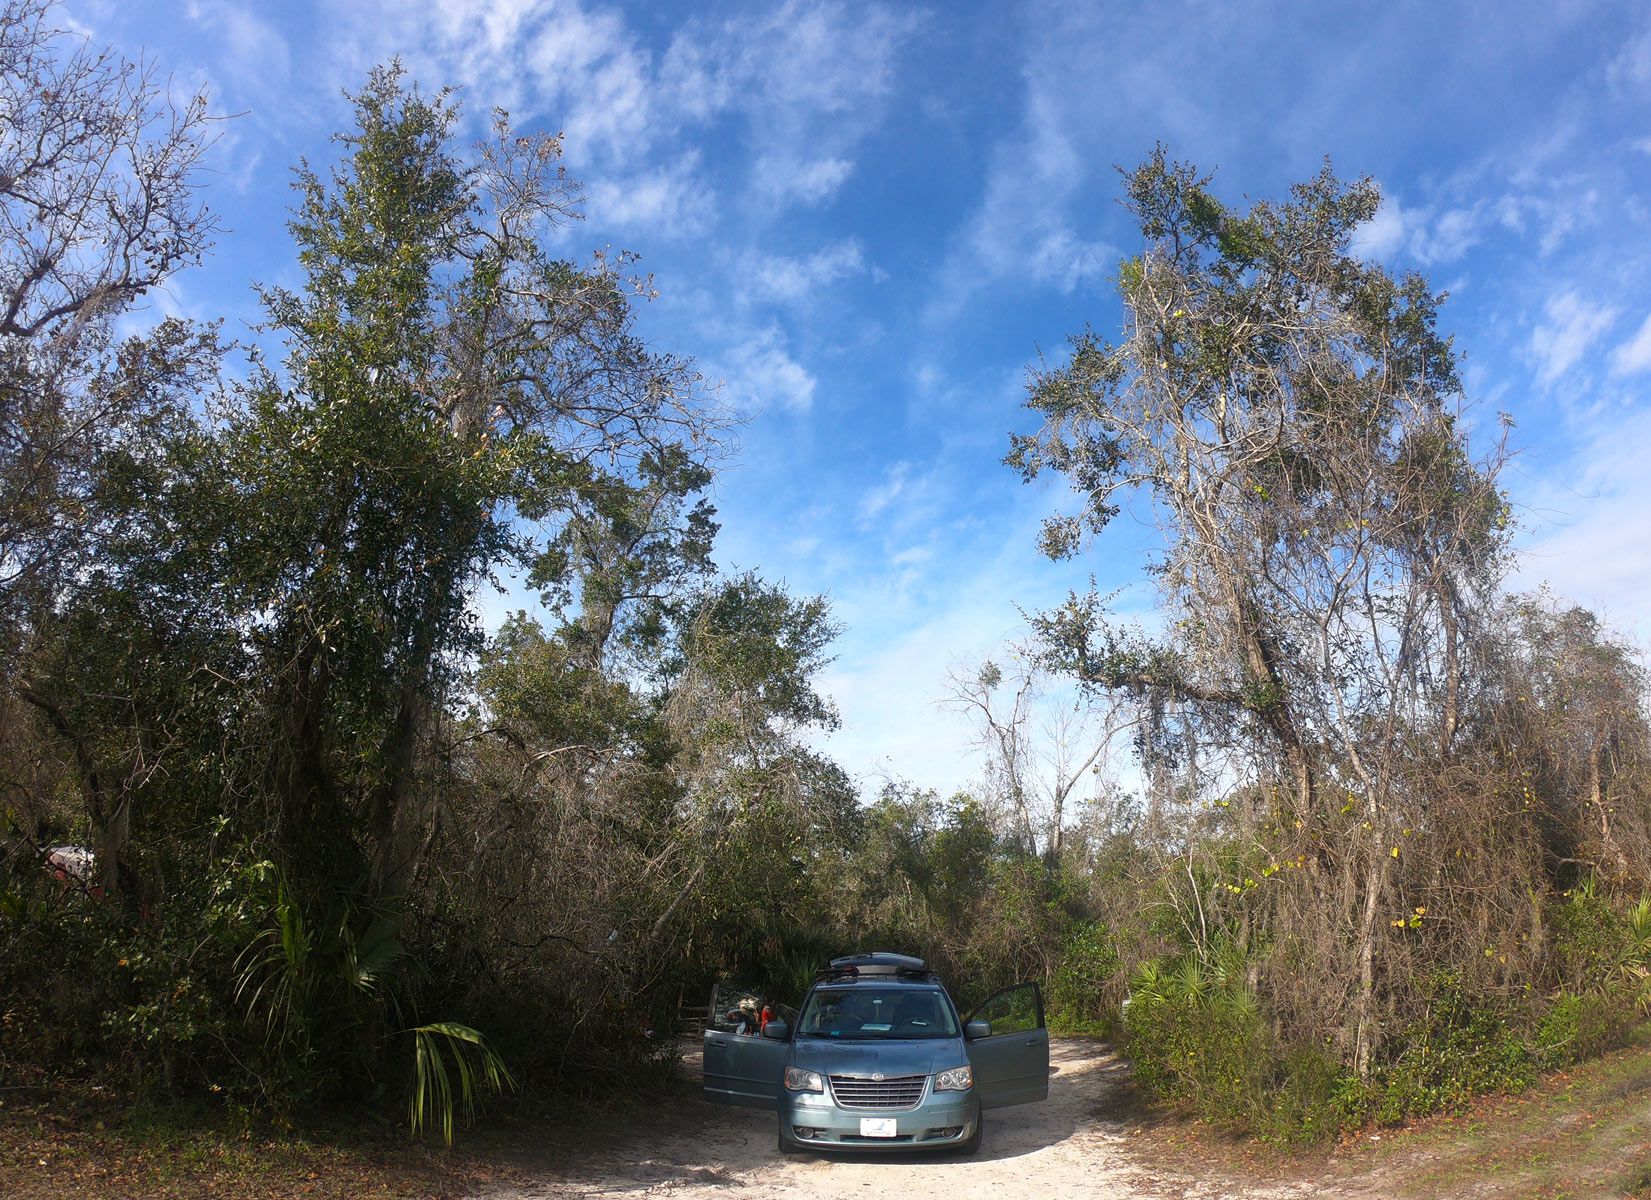 Blue van with open doors at campsite at Blue Spring State Park, Florida